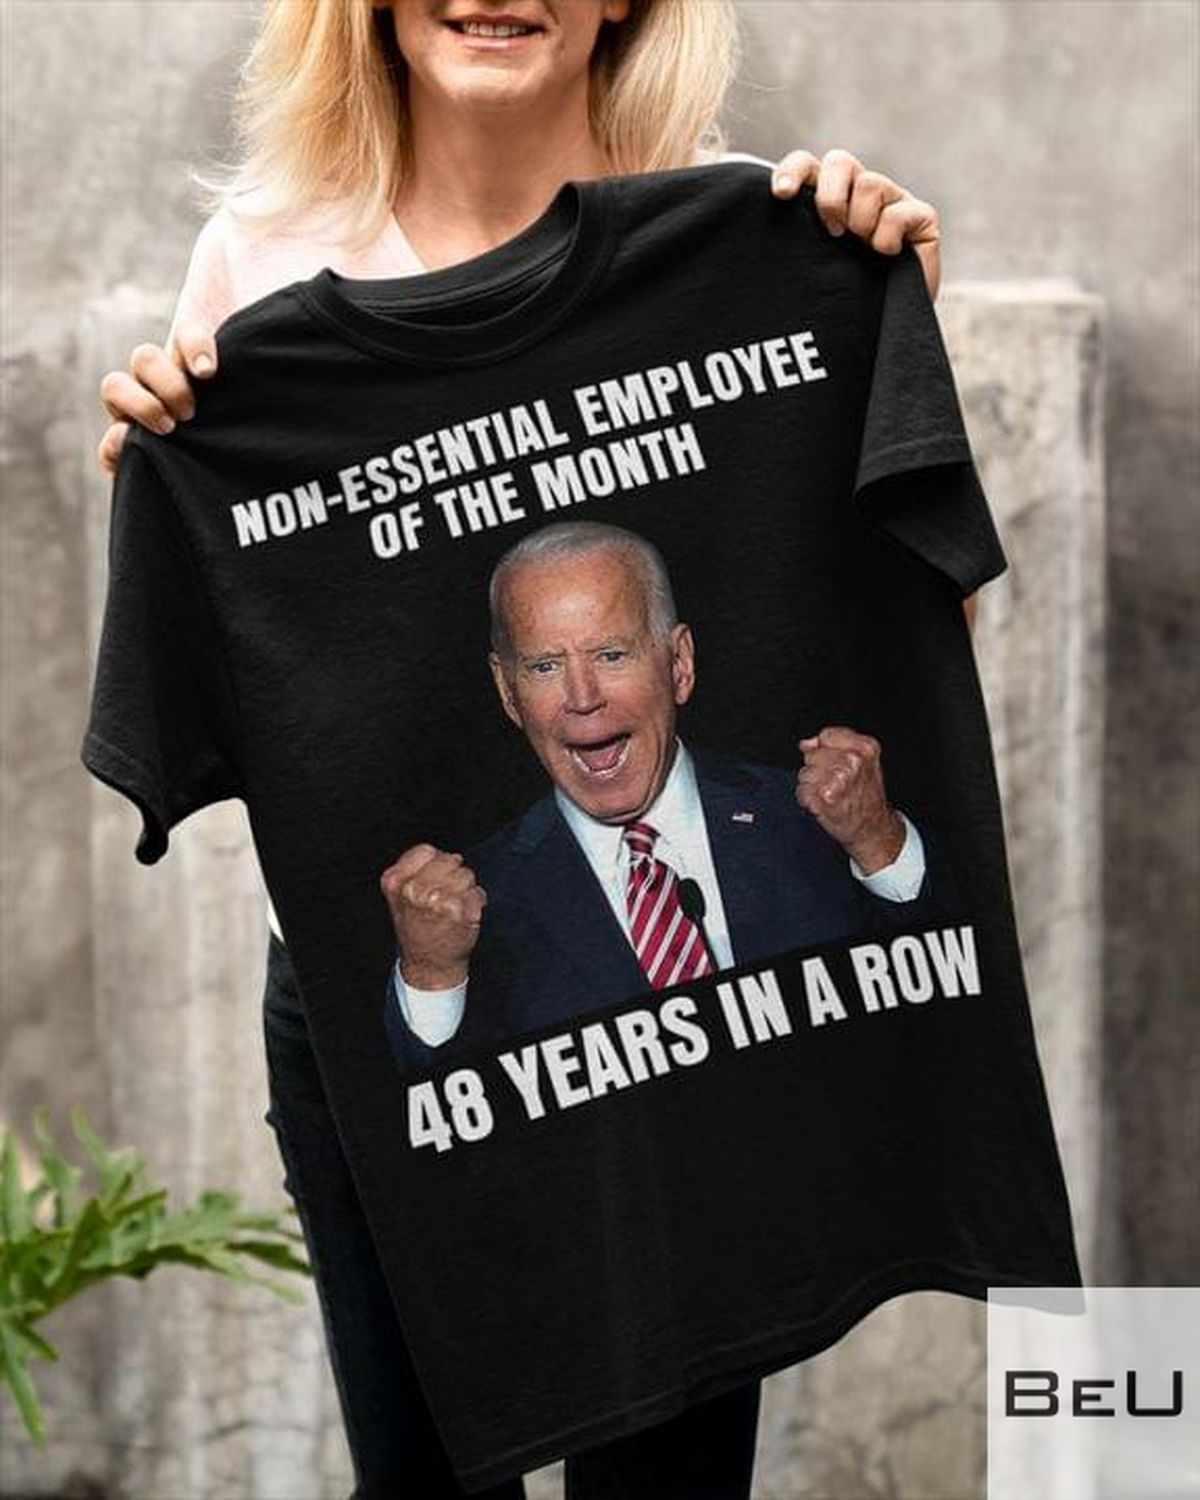 Non-Essential Employee Of The Month 48 Years In A Row Shirt v